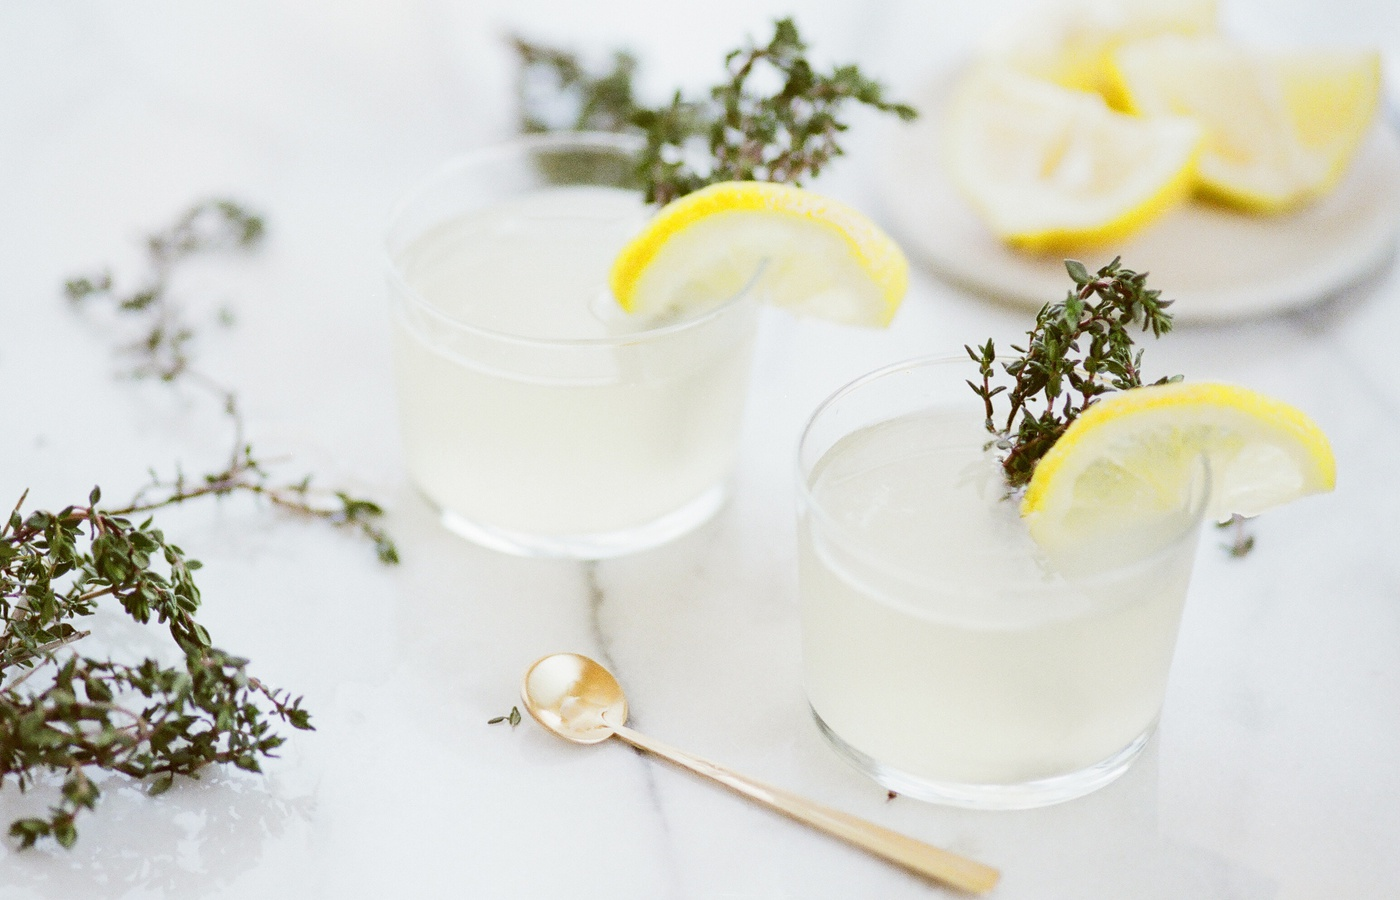 The Best Herbs to Grow That Can Be Used In Cocktails